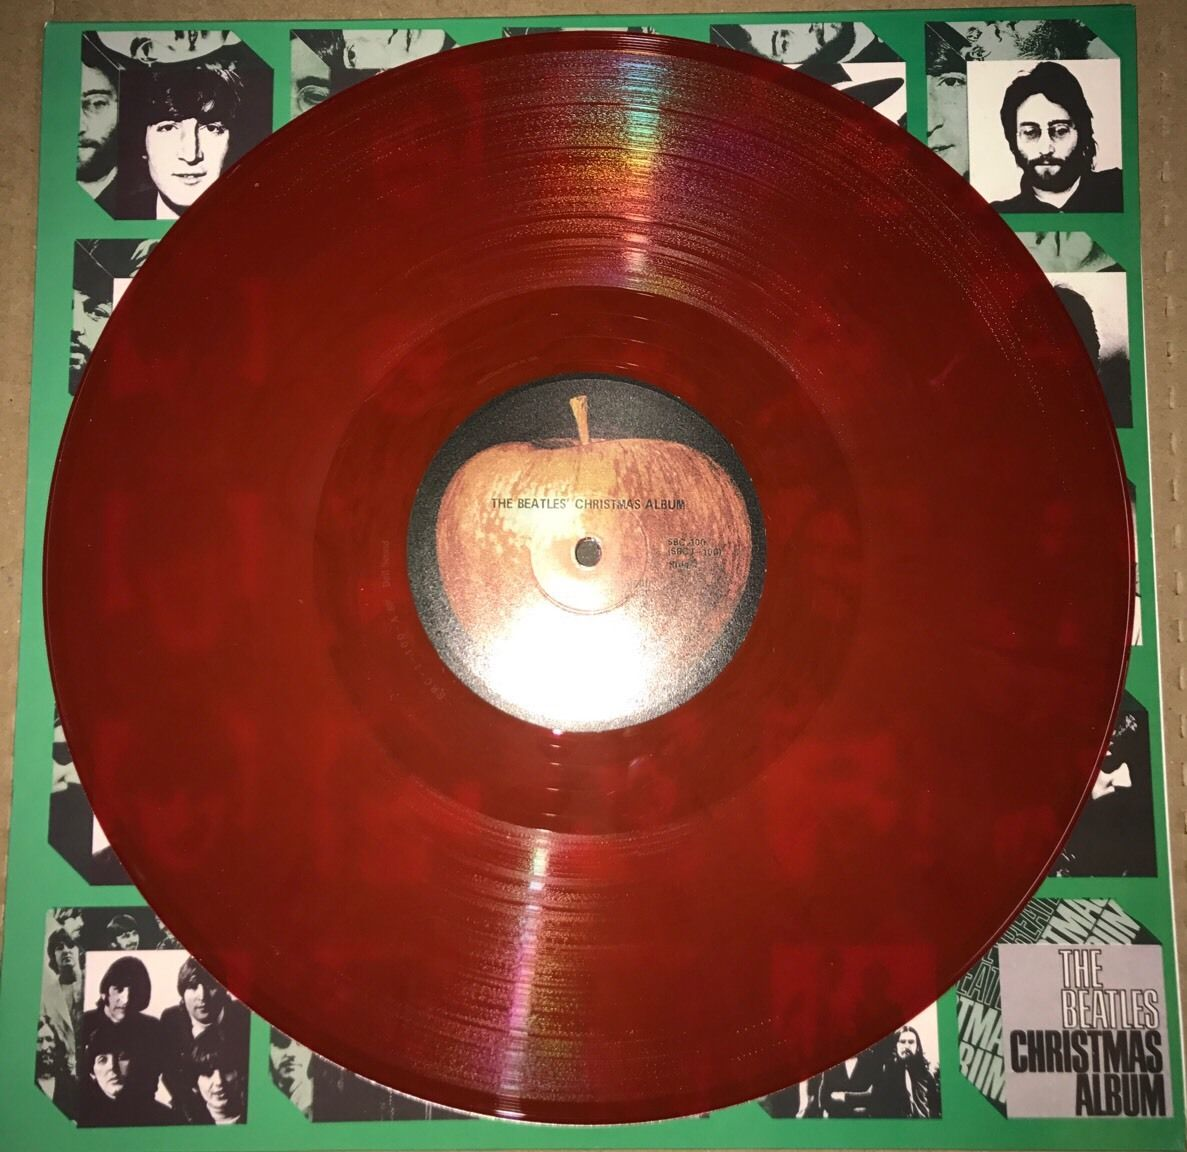 The Beatles Christmas Album.Beatles Christmas Album 180g Red Colored Vinyl